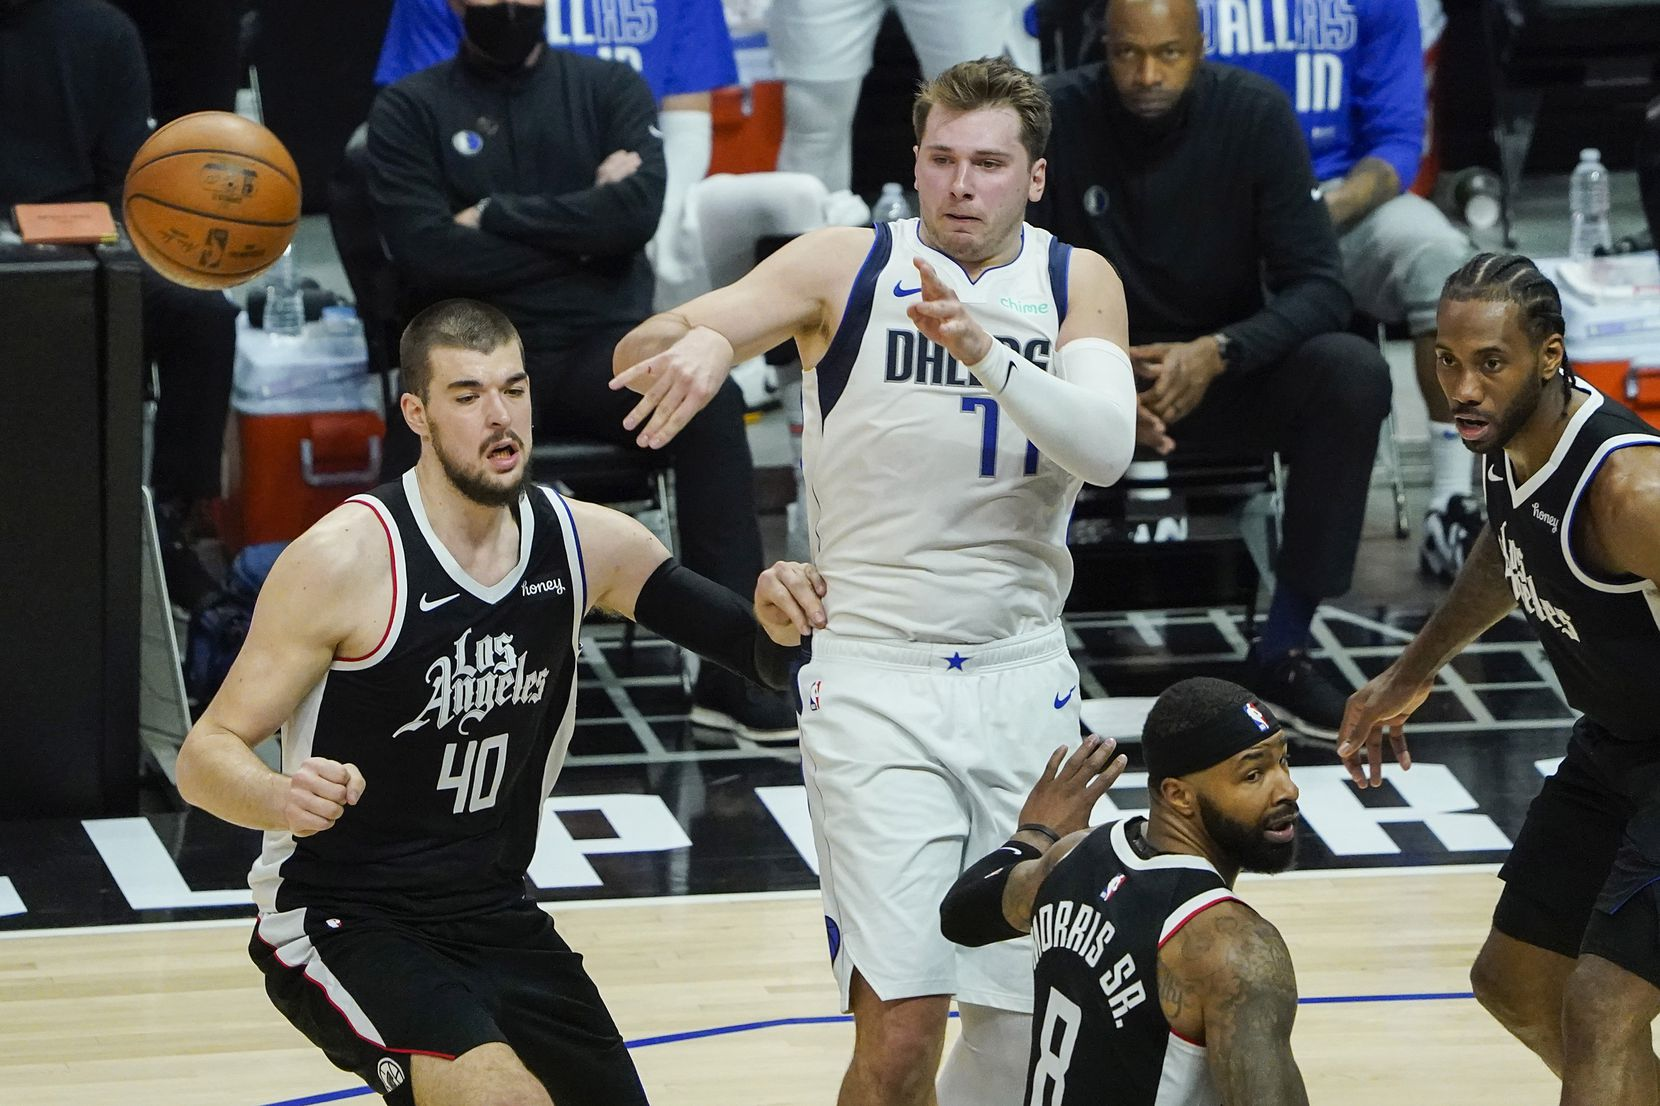 Dallas Mavericks guard Luka Doncic (77) passes the ball under pressure from LA Clippers center Ivica Zubac (40), forward Marcus Morris Sr. (8) and forward Kawhi Leonard (2) during the second quarter of an NBA playoff basketball game at the Staples Center on Wednesday, June 2, 2021, in Los Angeles.  (Smiley N. Pool/The Dallas Morning News)